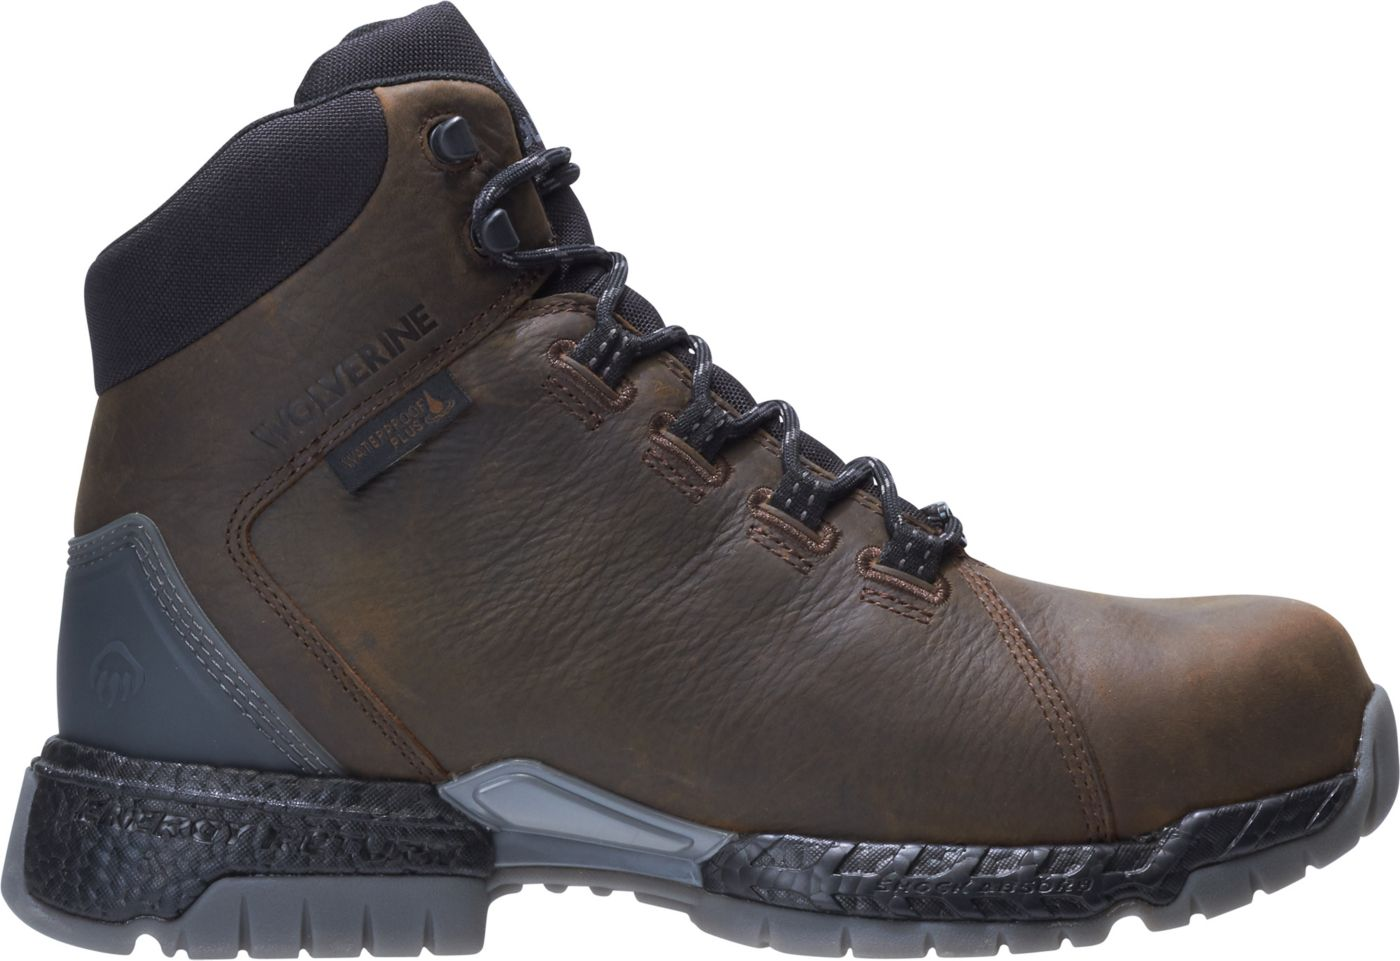 Wolverine Men's I-90 Rush Waterproof Composite Toe Work Boots